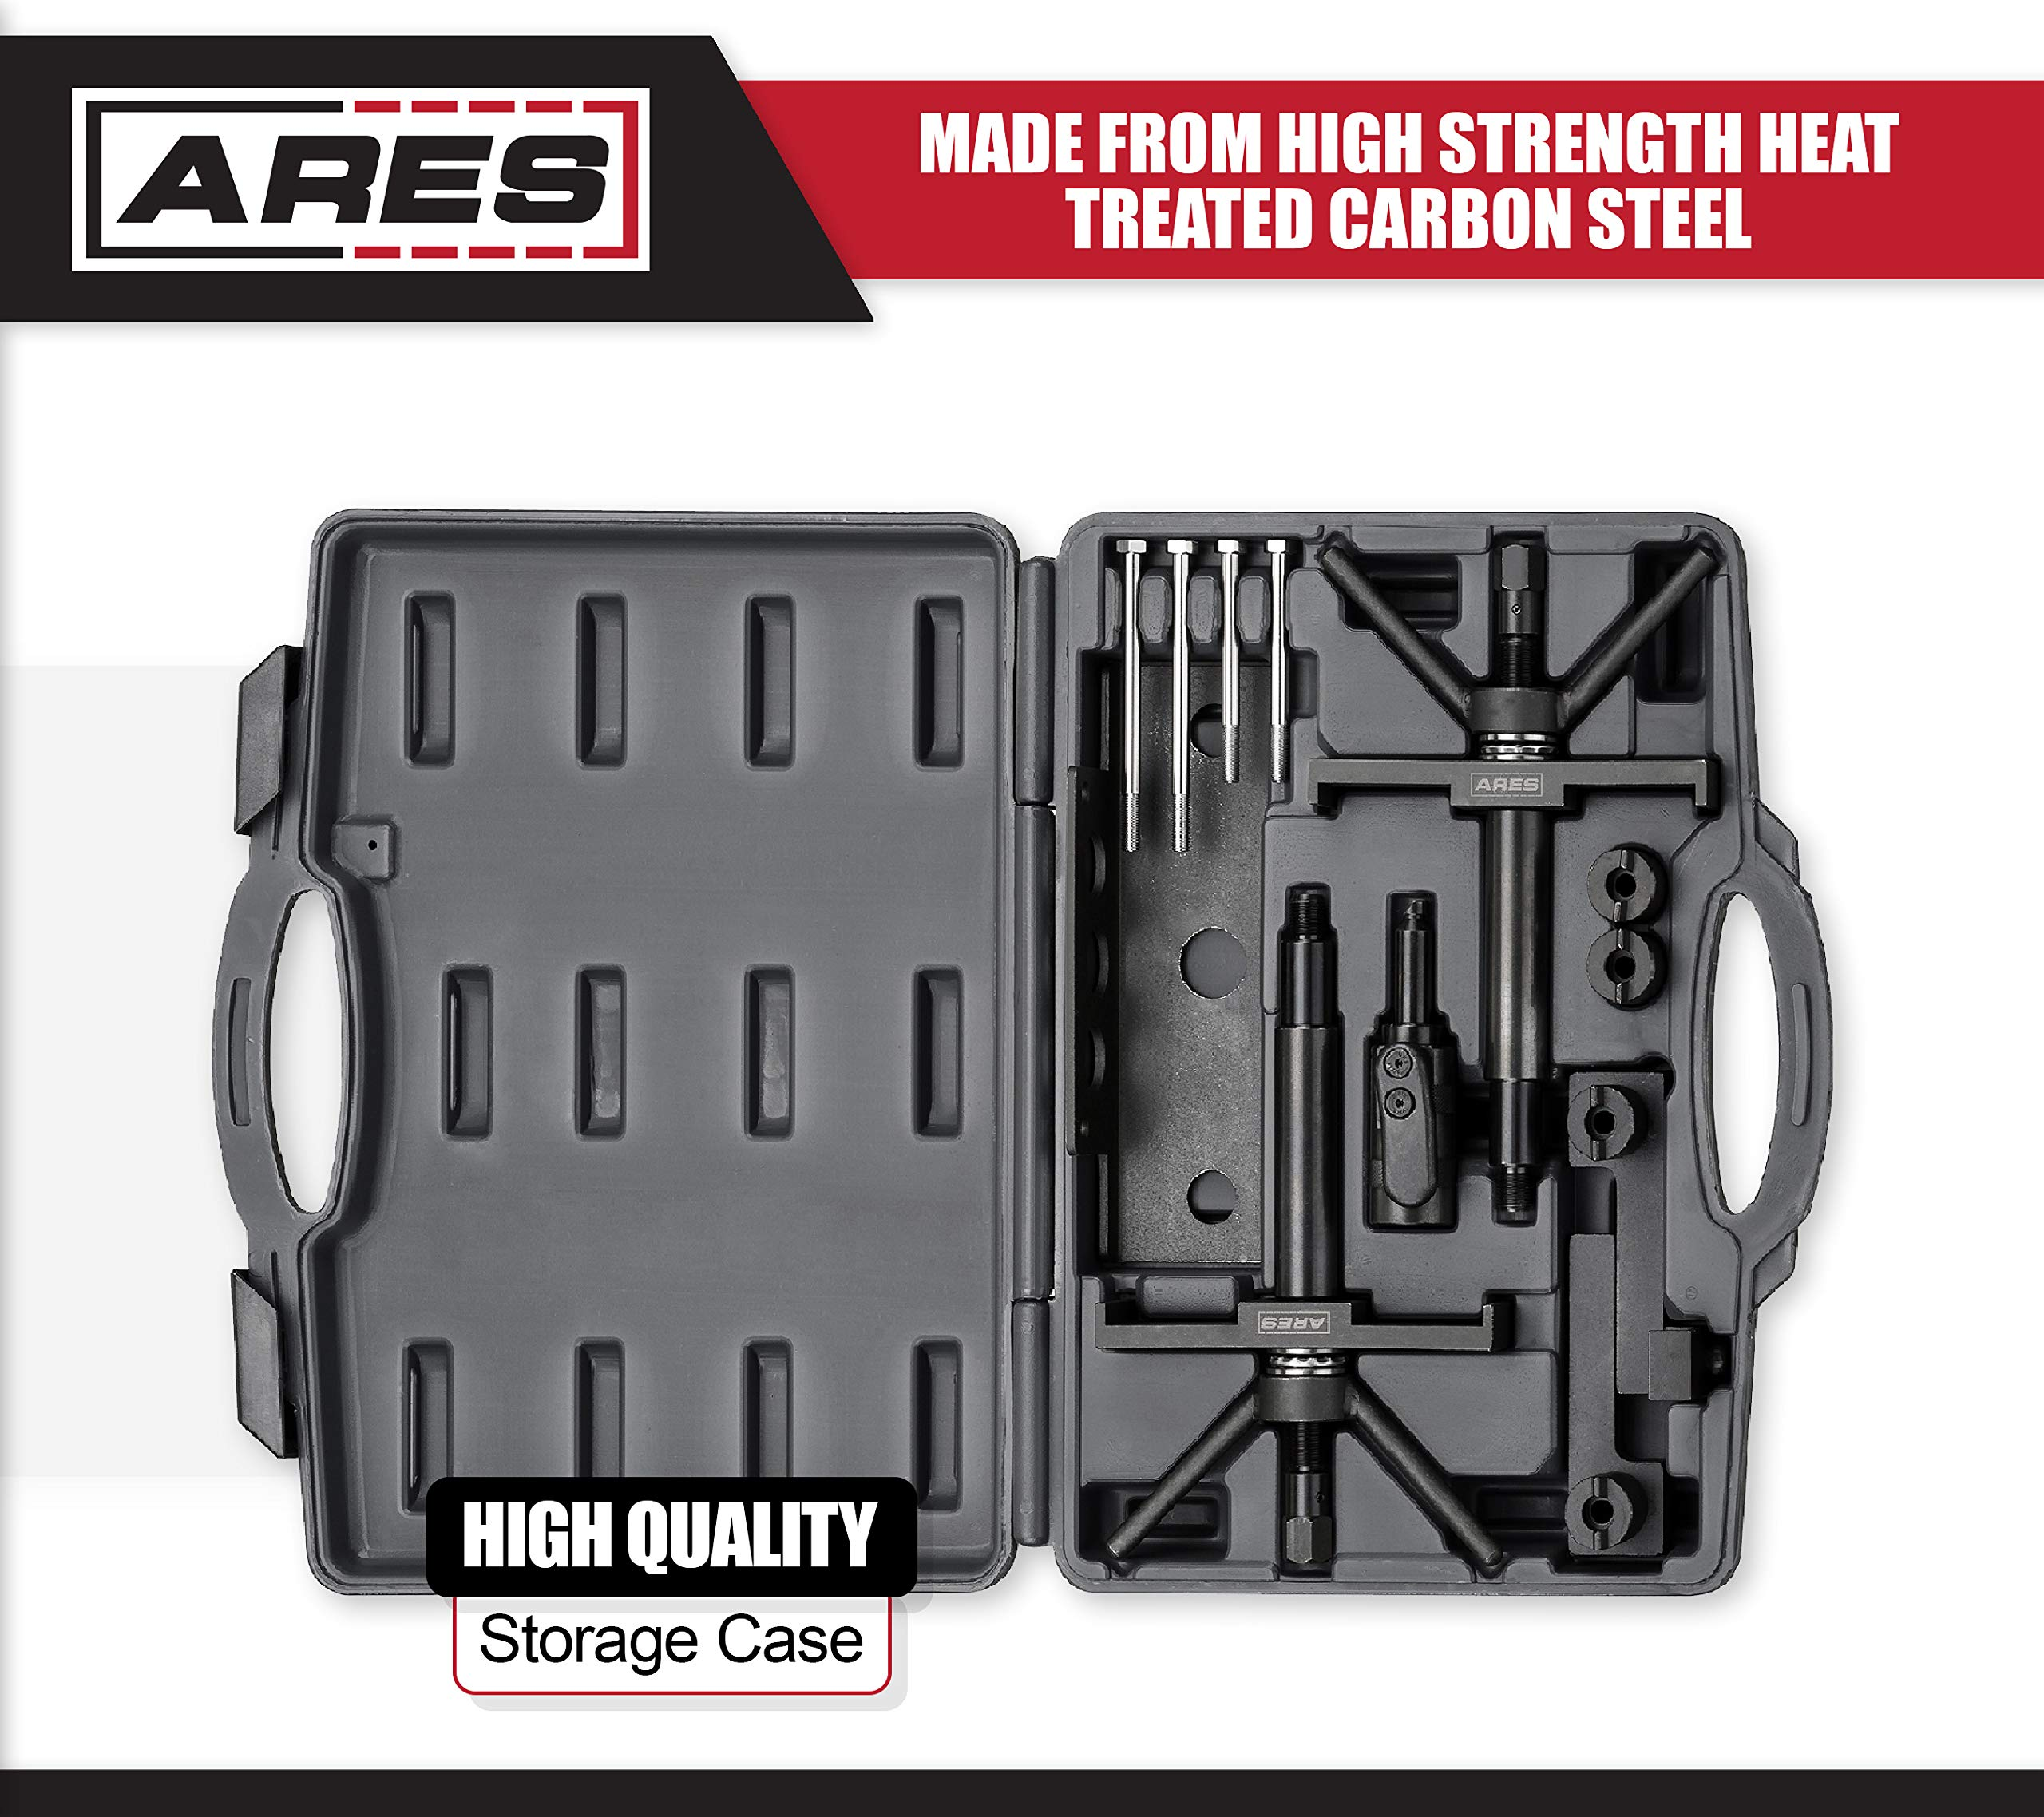 ARES 71506 | Volvo Camshaft, Crankshaft, and Timing Alignment Master Tool Set | Deep Counter-Weighted Sockets for Increased Torque | Correctly Install Camshafts with Cam Cover by ARES (Image #2)